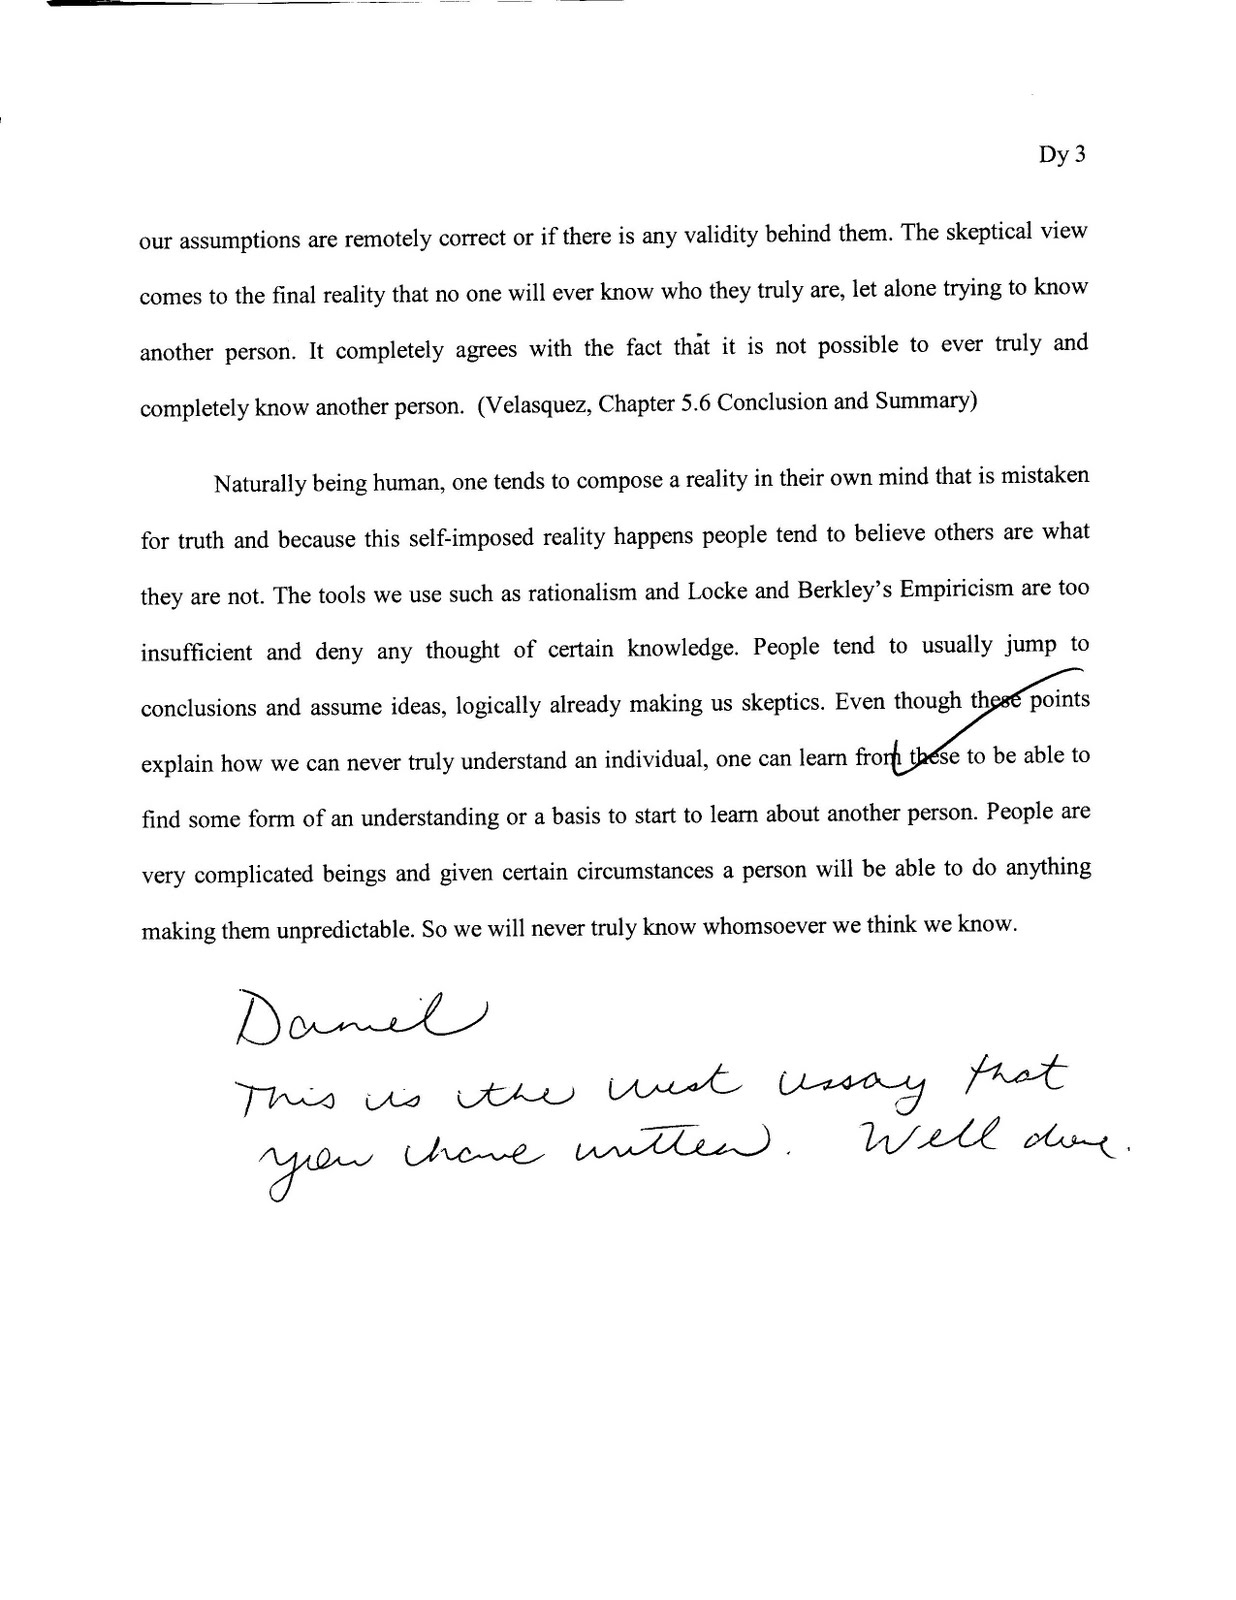 ideas for a college persuasive essay what are some transitions tourism is such an interesting subject so many potential angles for essay topics do you need help coming up persuasive essay topics for your